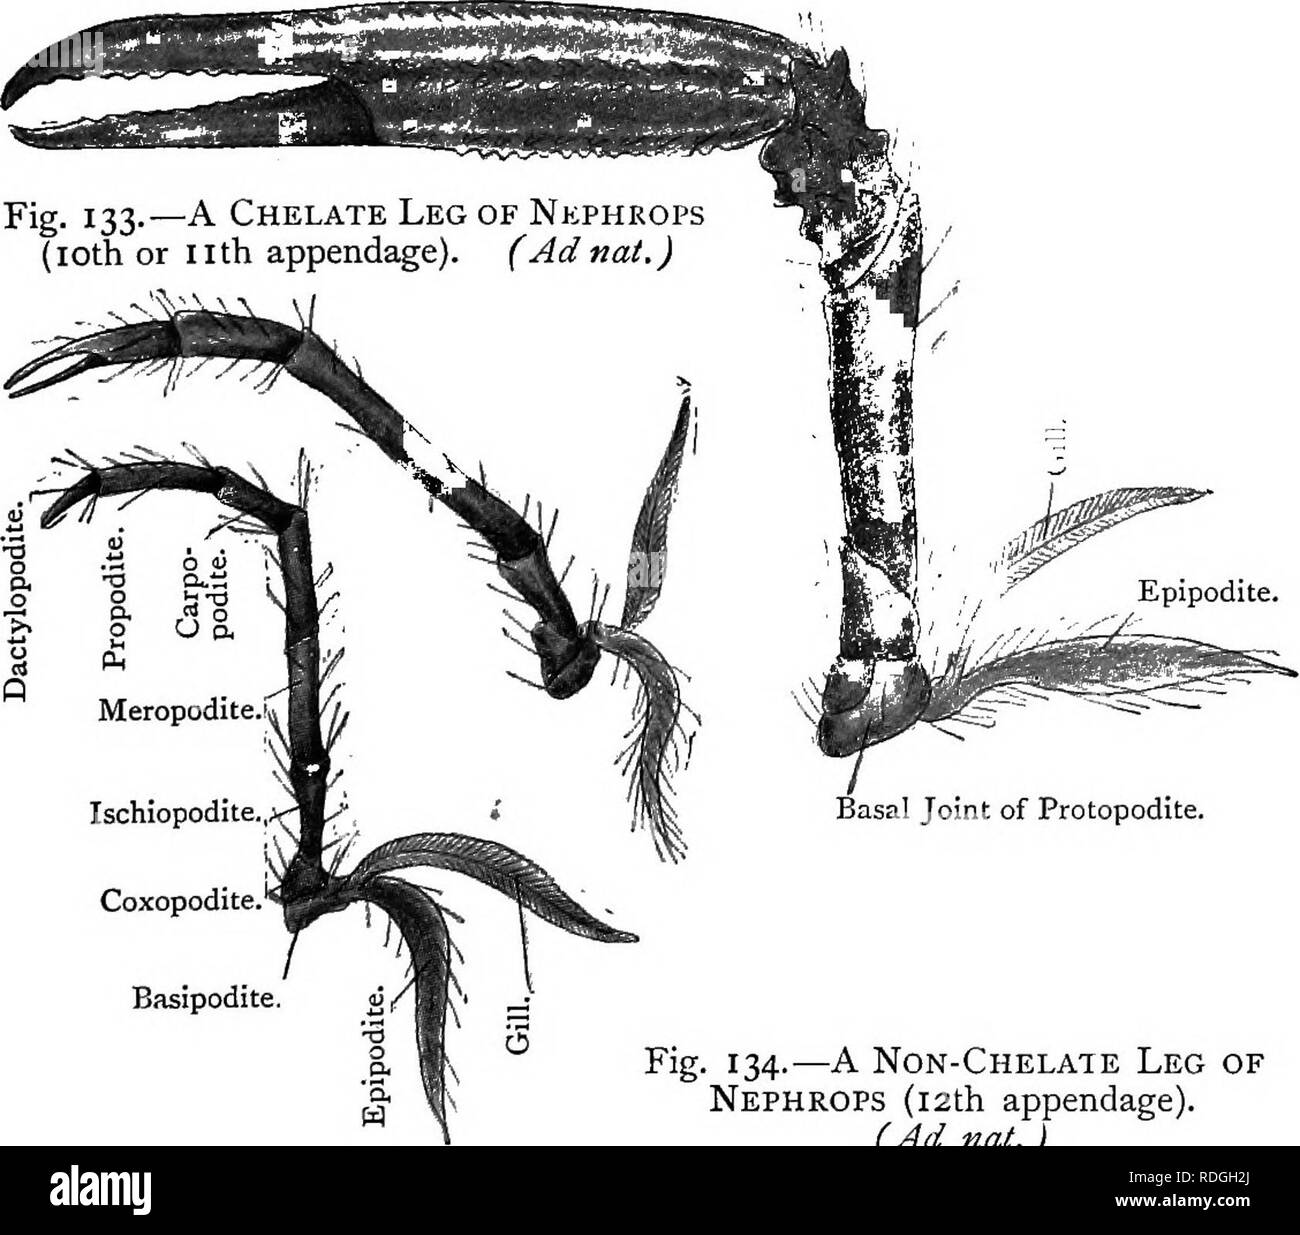 . Elementary text-book of zoology. NEPHROPS. 209 will be on the basal joint of the anti-penultimate leg. In front of the legs are the chela, or pincers, usually asym- metric, as one is modified for cutting and the other for crushing. They are evidently large legs and do not differ essentially from a typical leg. Fig. 132.—A Chela of Nephrops (9th appendage). (Adnat.). Ischiopodite., Coxopodite.' Basipodite. Fig. 134.—A Non-Chelate Leg of Nephrops (12th appendage). (Ad nat.) In front of the chelae are three pairs of maxillipedes or foot-jaws. The second maxillipede may be examined first. It has - Stock Image